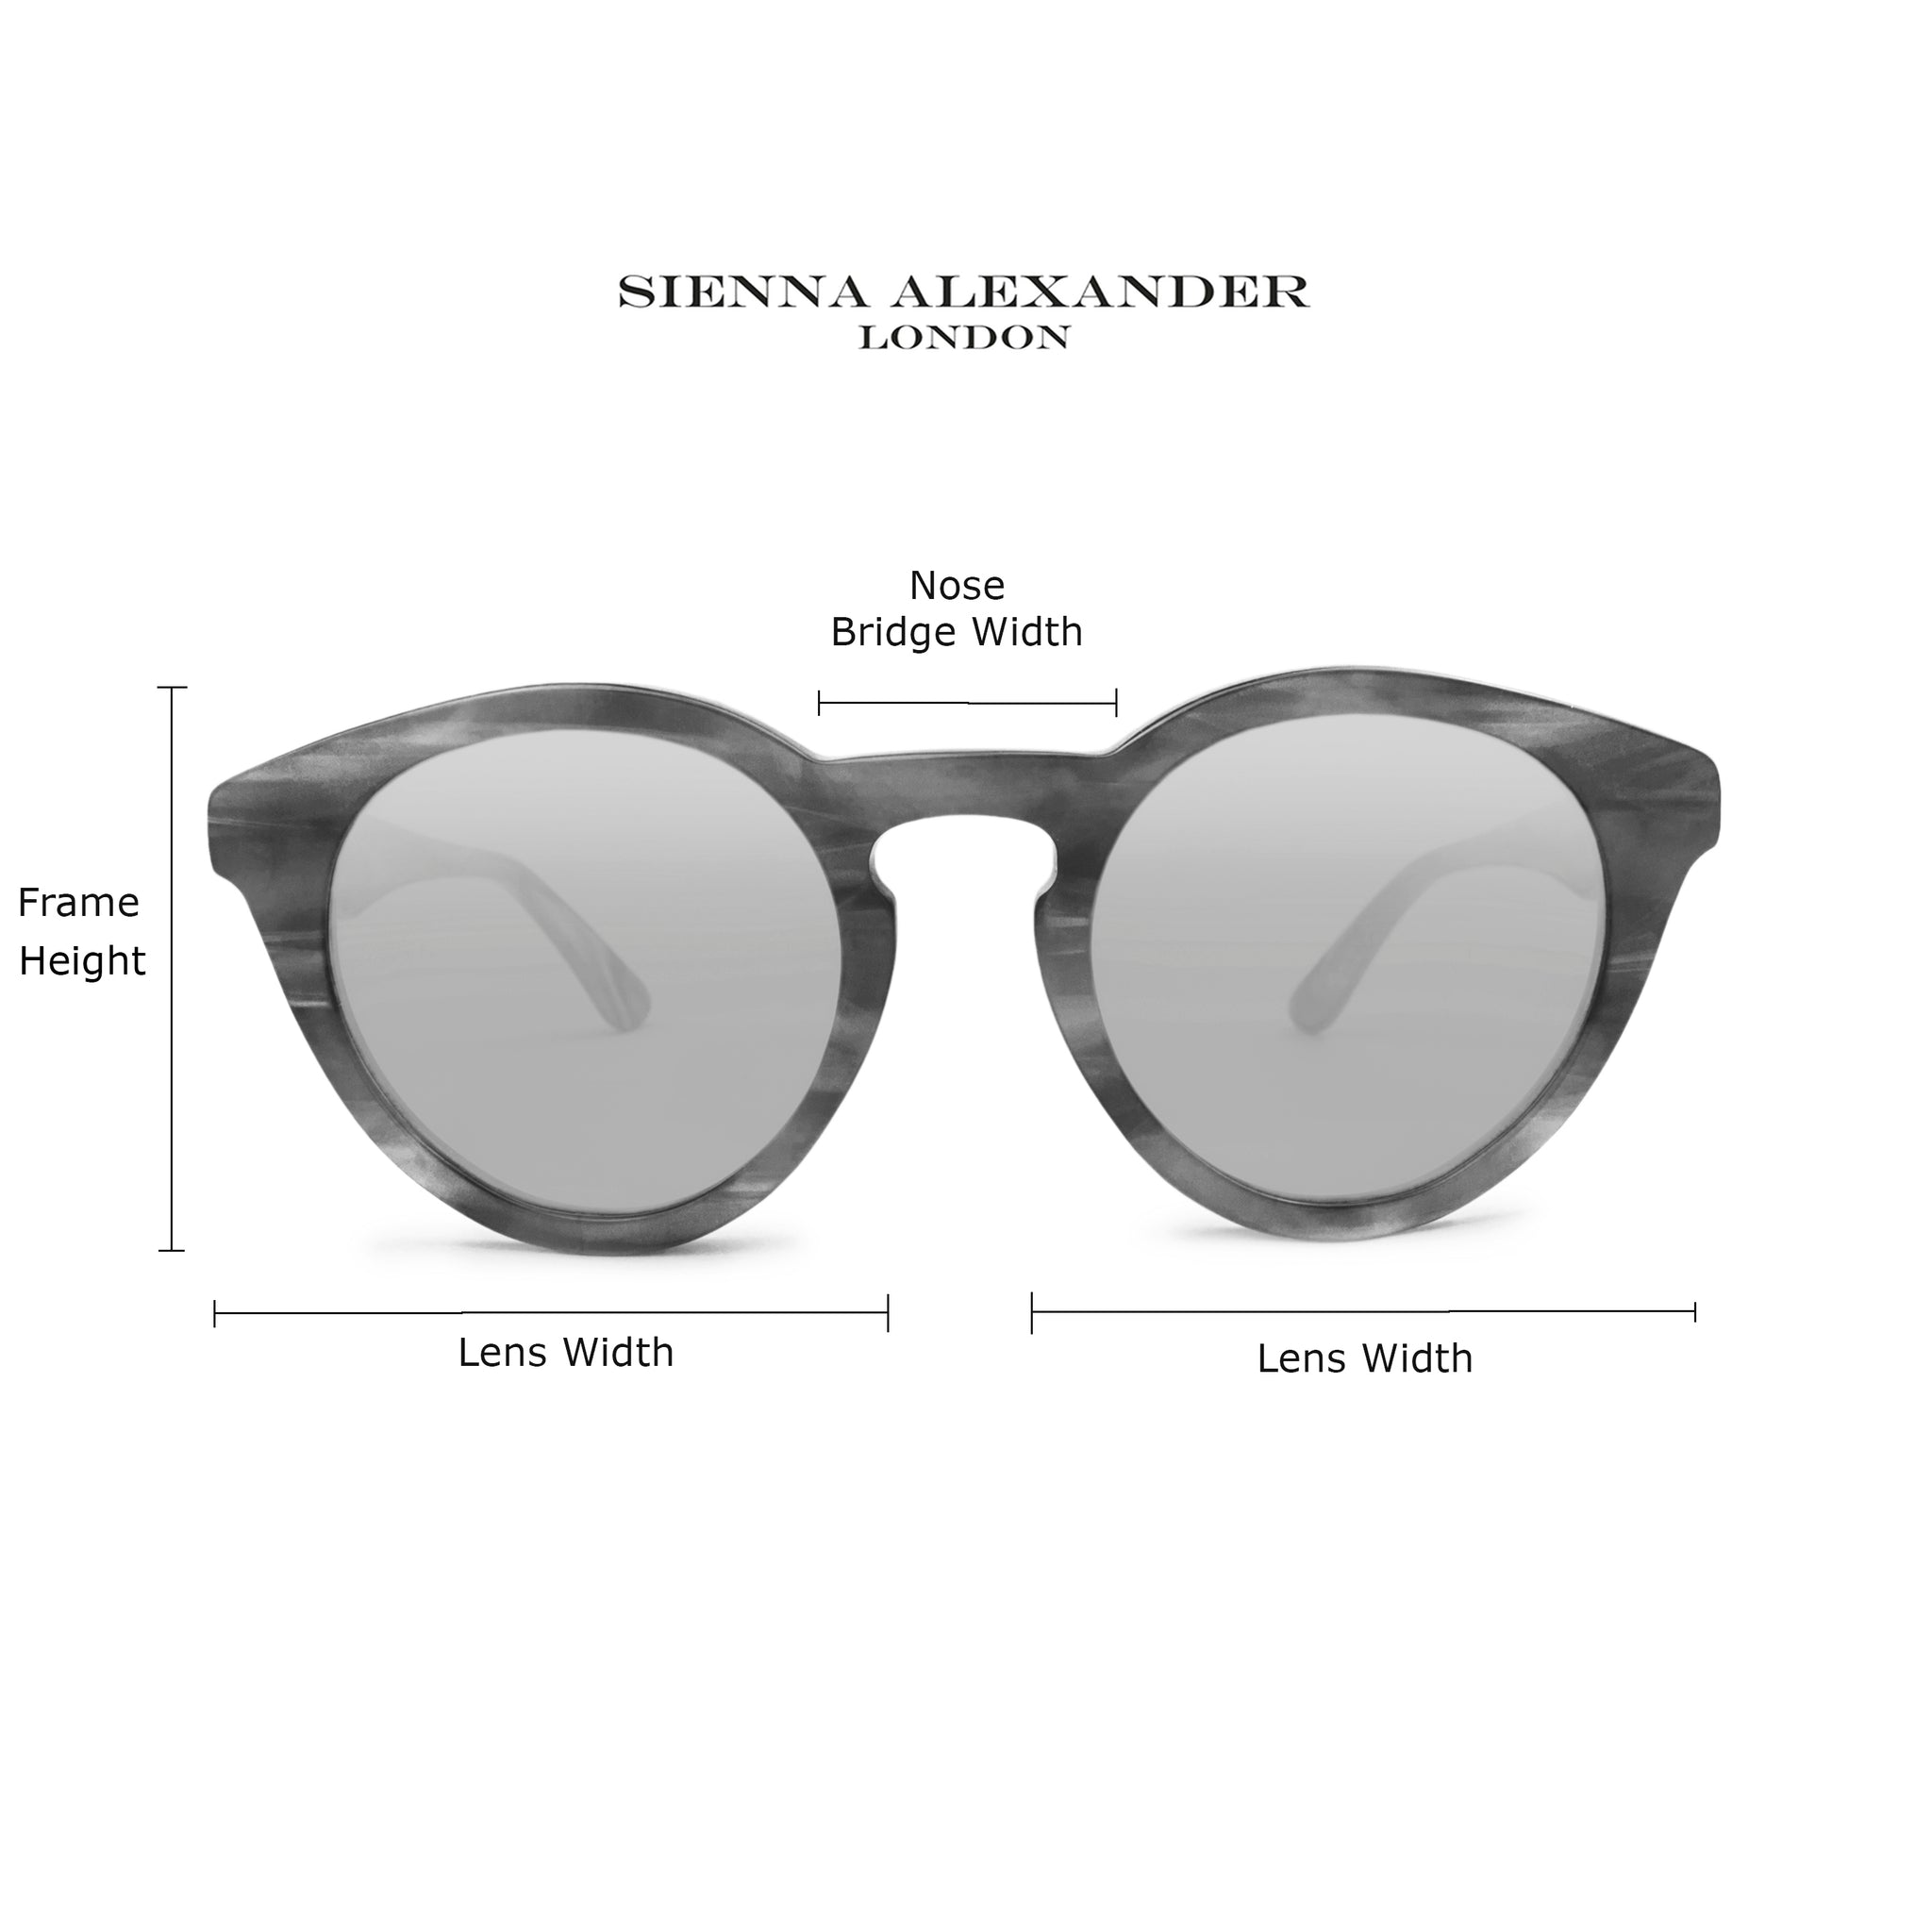 Sienna Alexander London - Size Guide